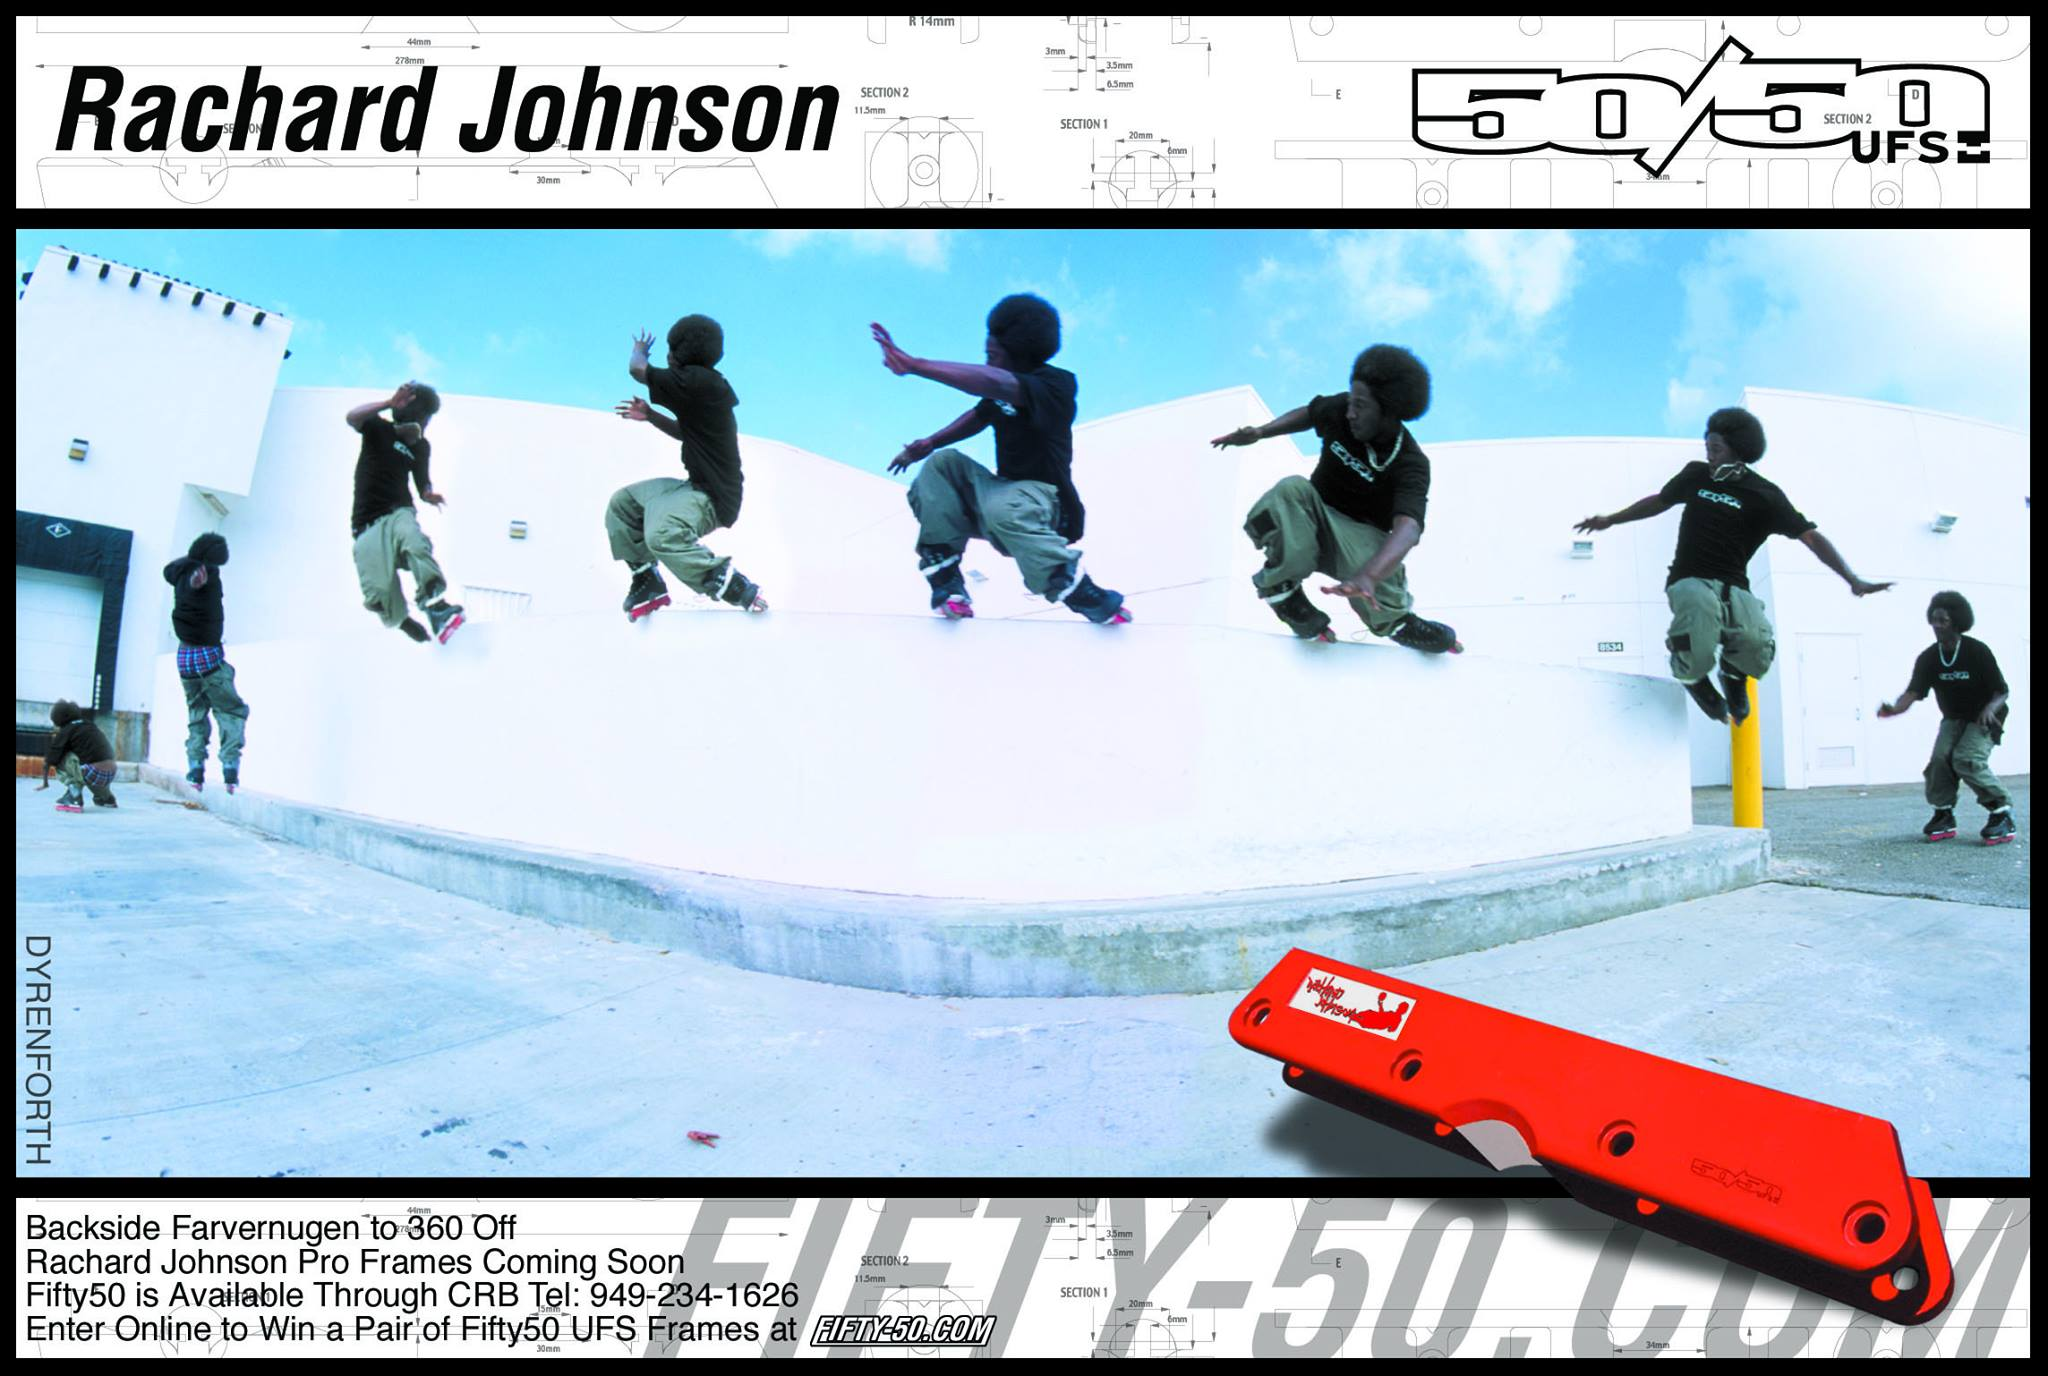 Rachard Johnson had the next Pro Model 50/50 UFS frame, shown in this Daily Bread ad in February 2002. With his huge hops, Rachard could get up on ledges most people would only dream of.